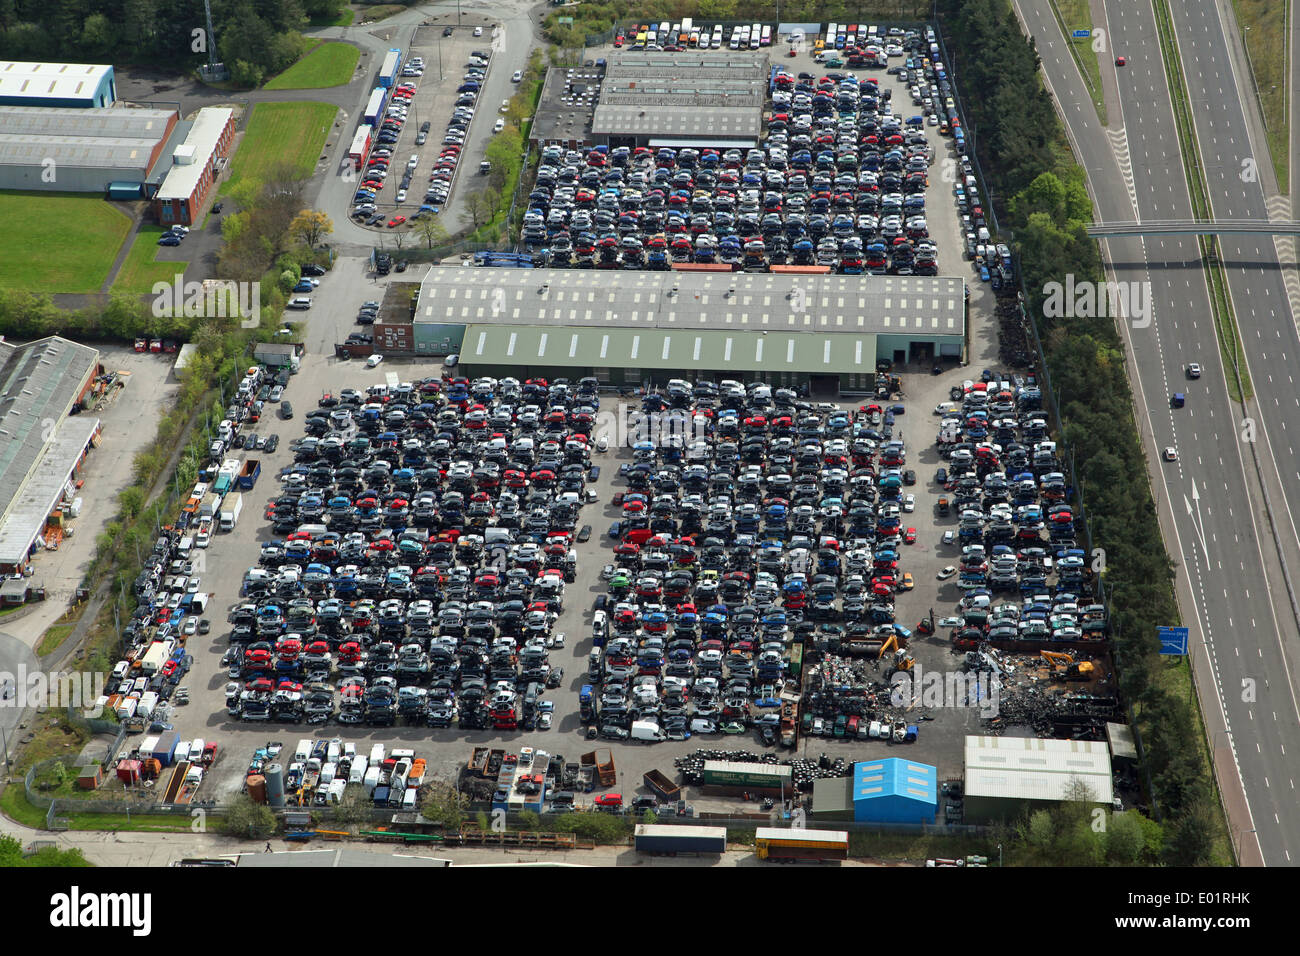 aerial view of a large car scrapyard next to the M58 at Skelmersdale, Lancashire - Stock Image